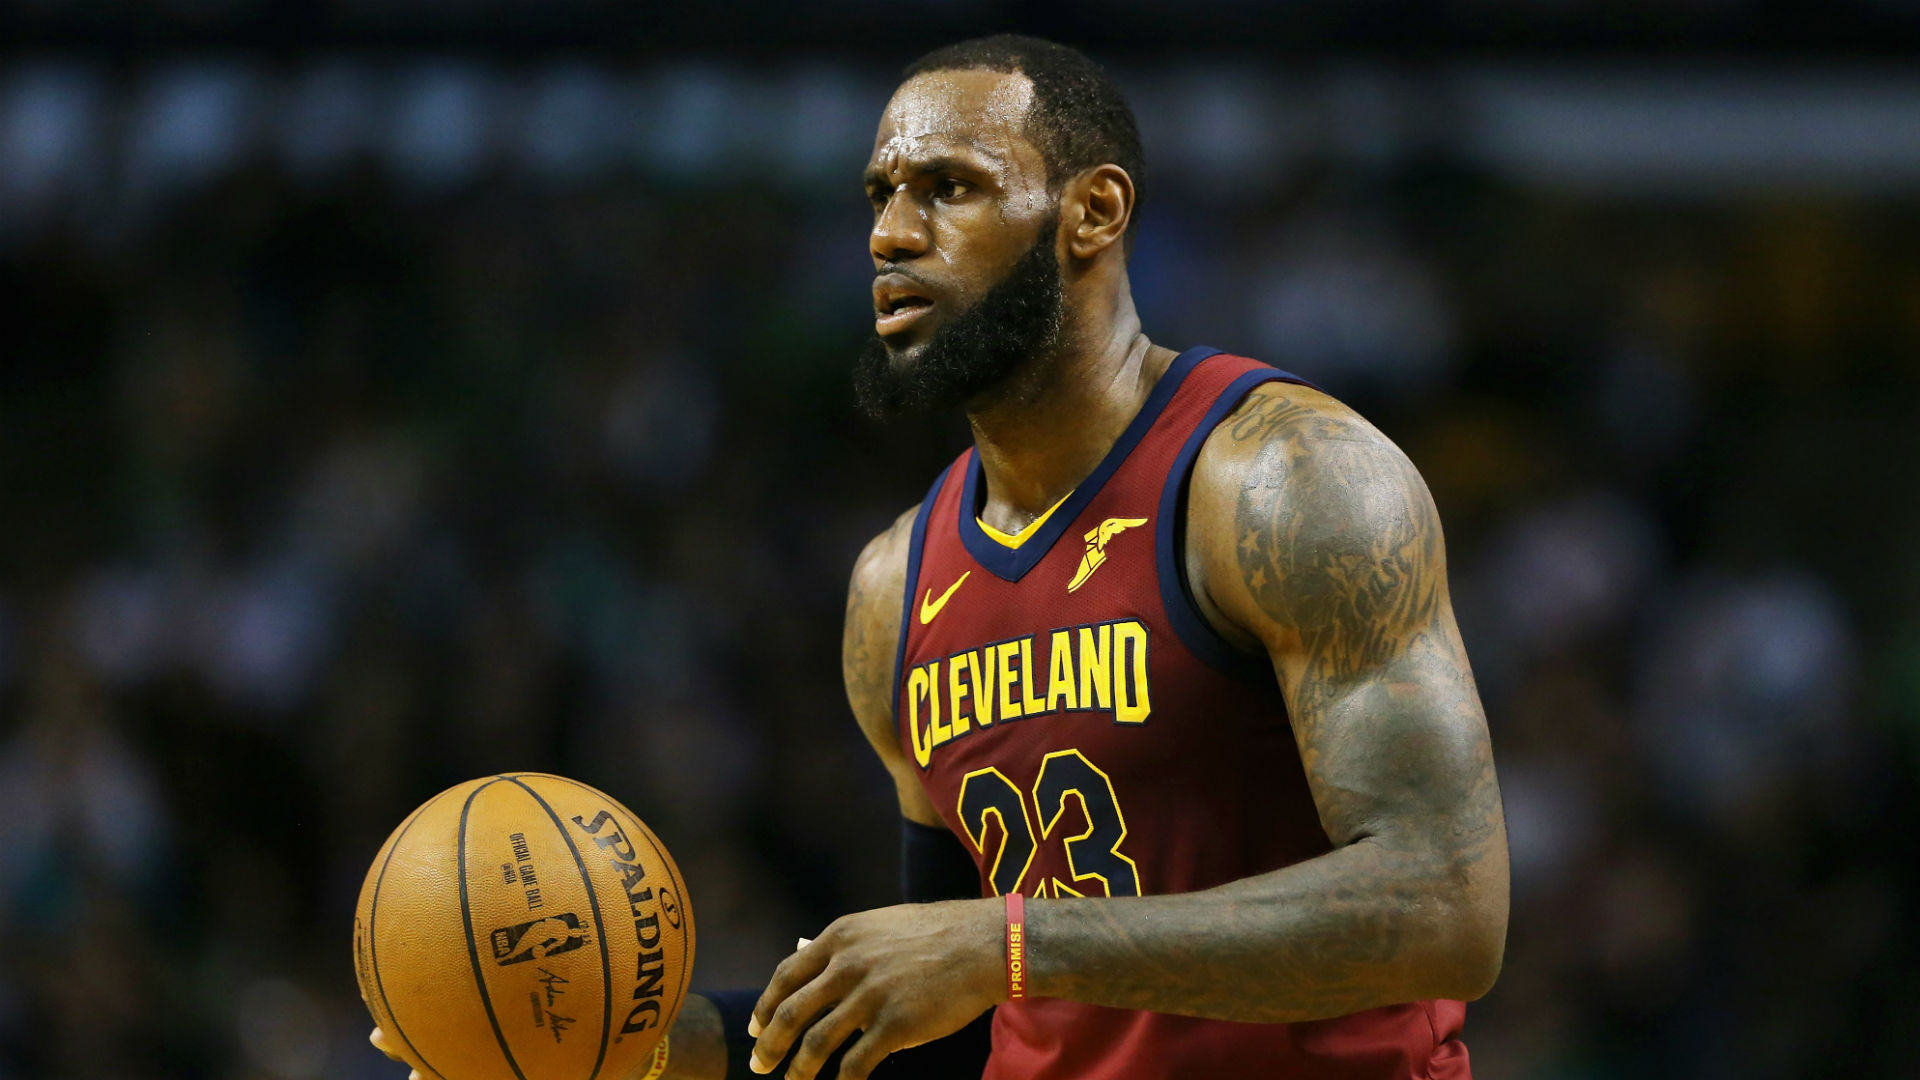 Witness greatness, as LeBron earns record 12th All-NBA First Team nod